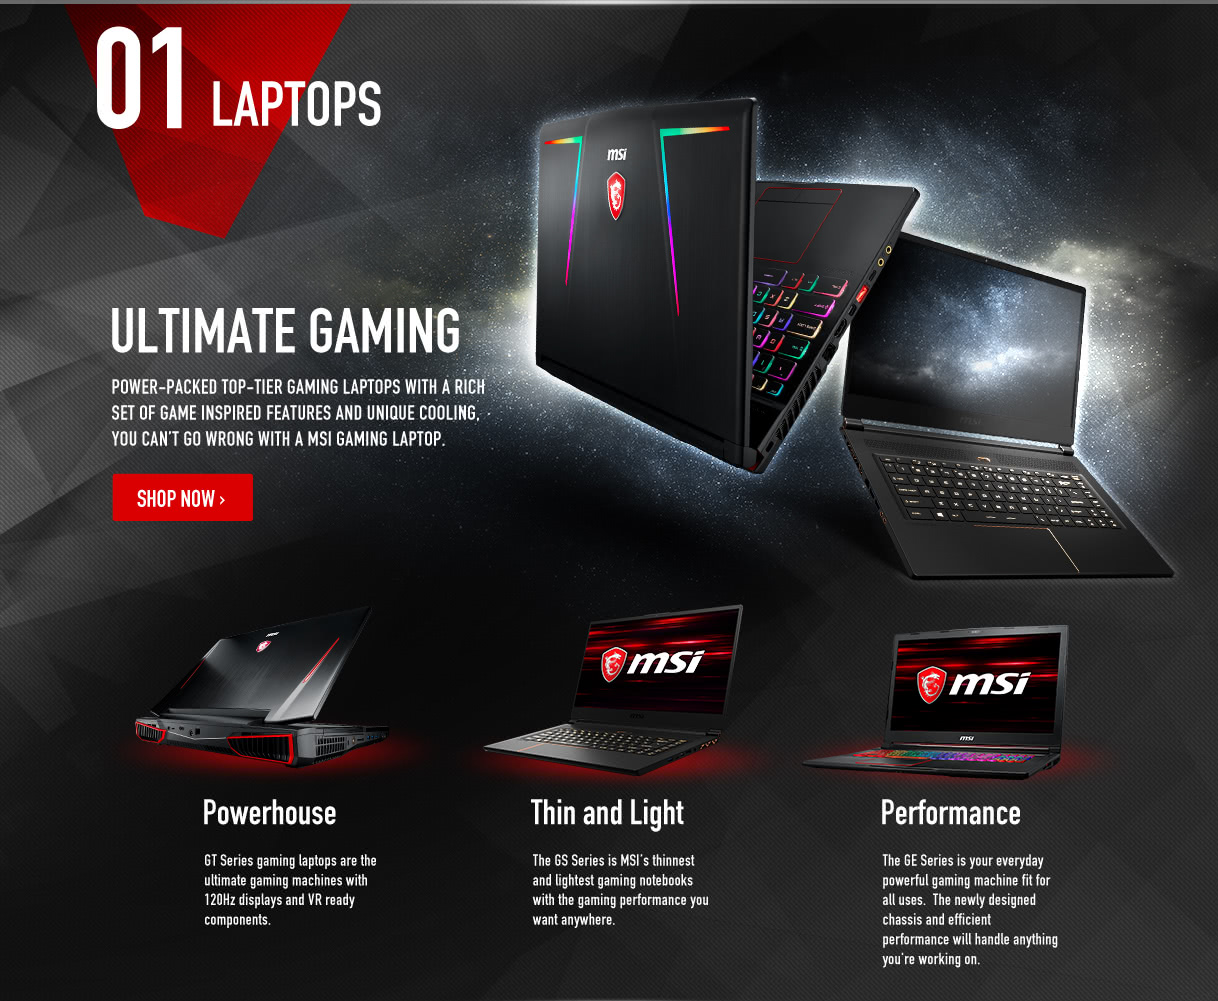 Msi Laptops Motherboards Graphics Cards More Light Laser Led Gt Circuits Traffic Lights For Games With 01 02 03 04 05 06 07